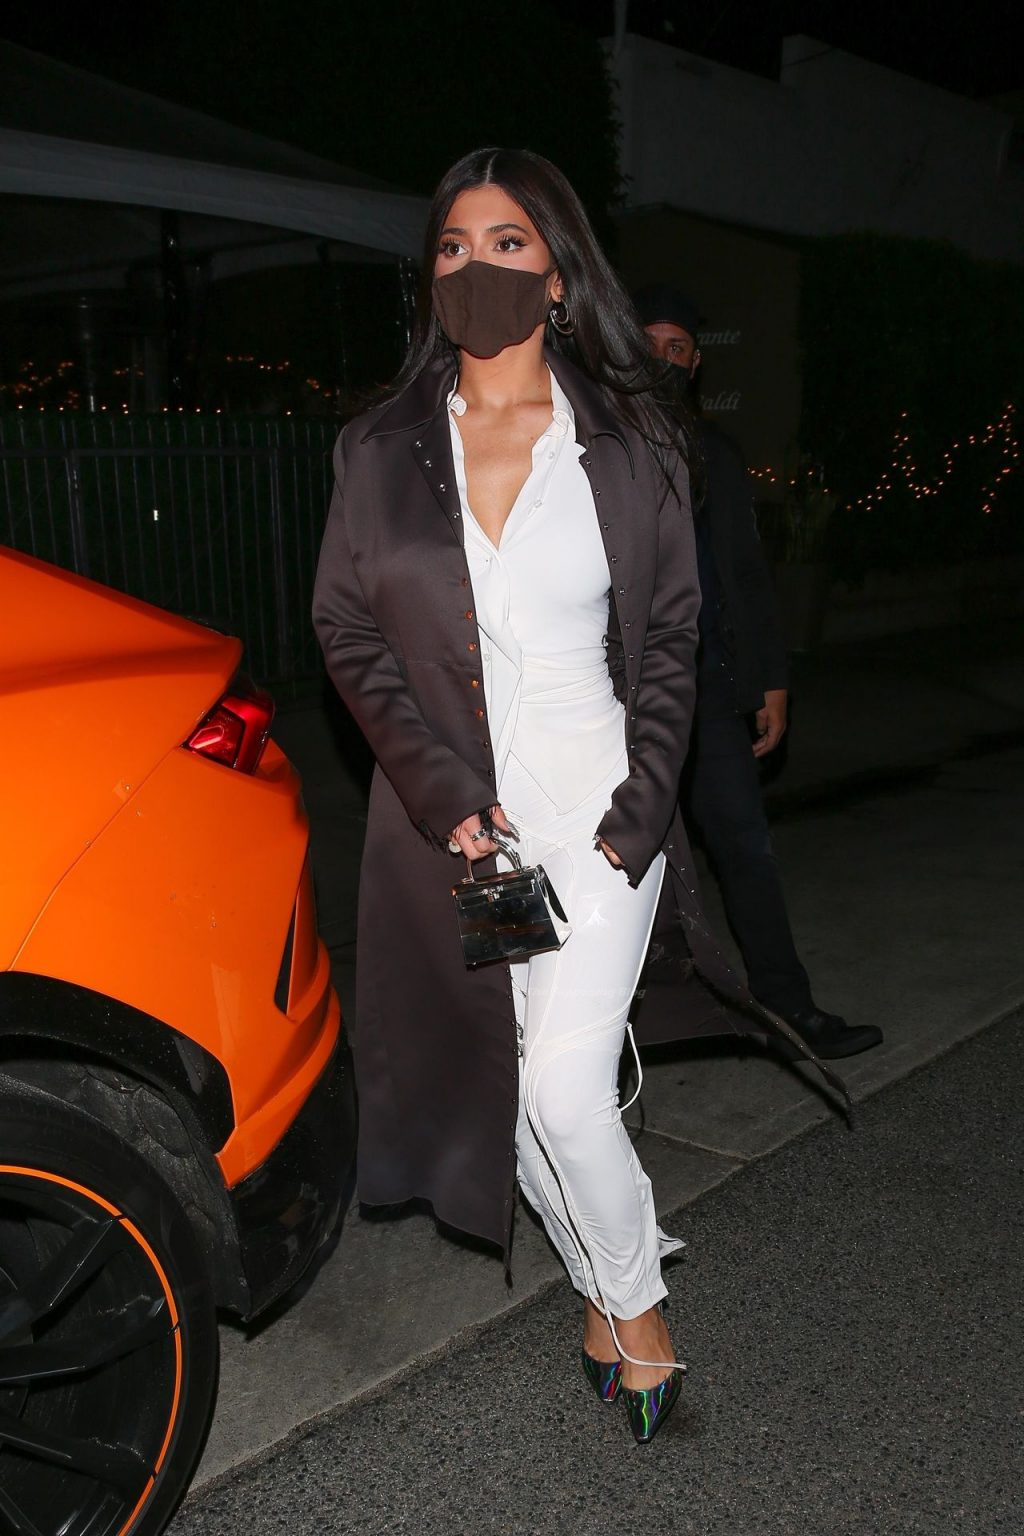 Kylie Jenner Shows Off Her Curvy Figure in White While Leaving Dinner in Santa Monica (72 Photos)